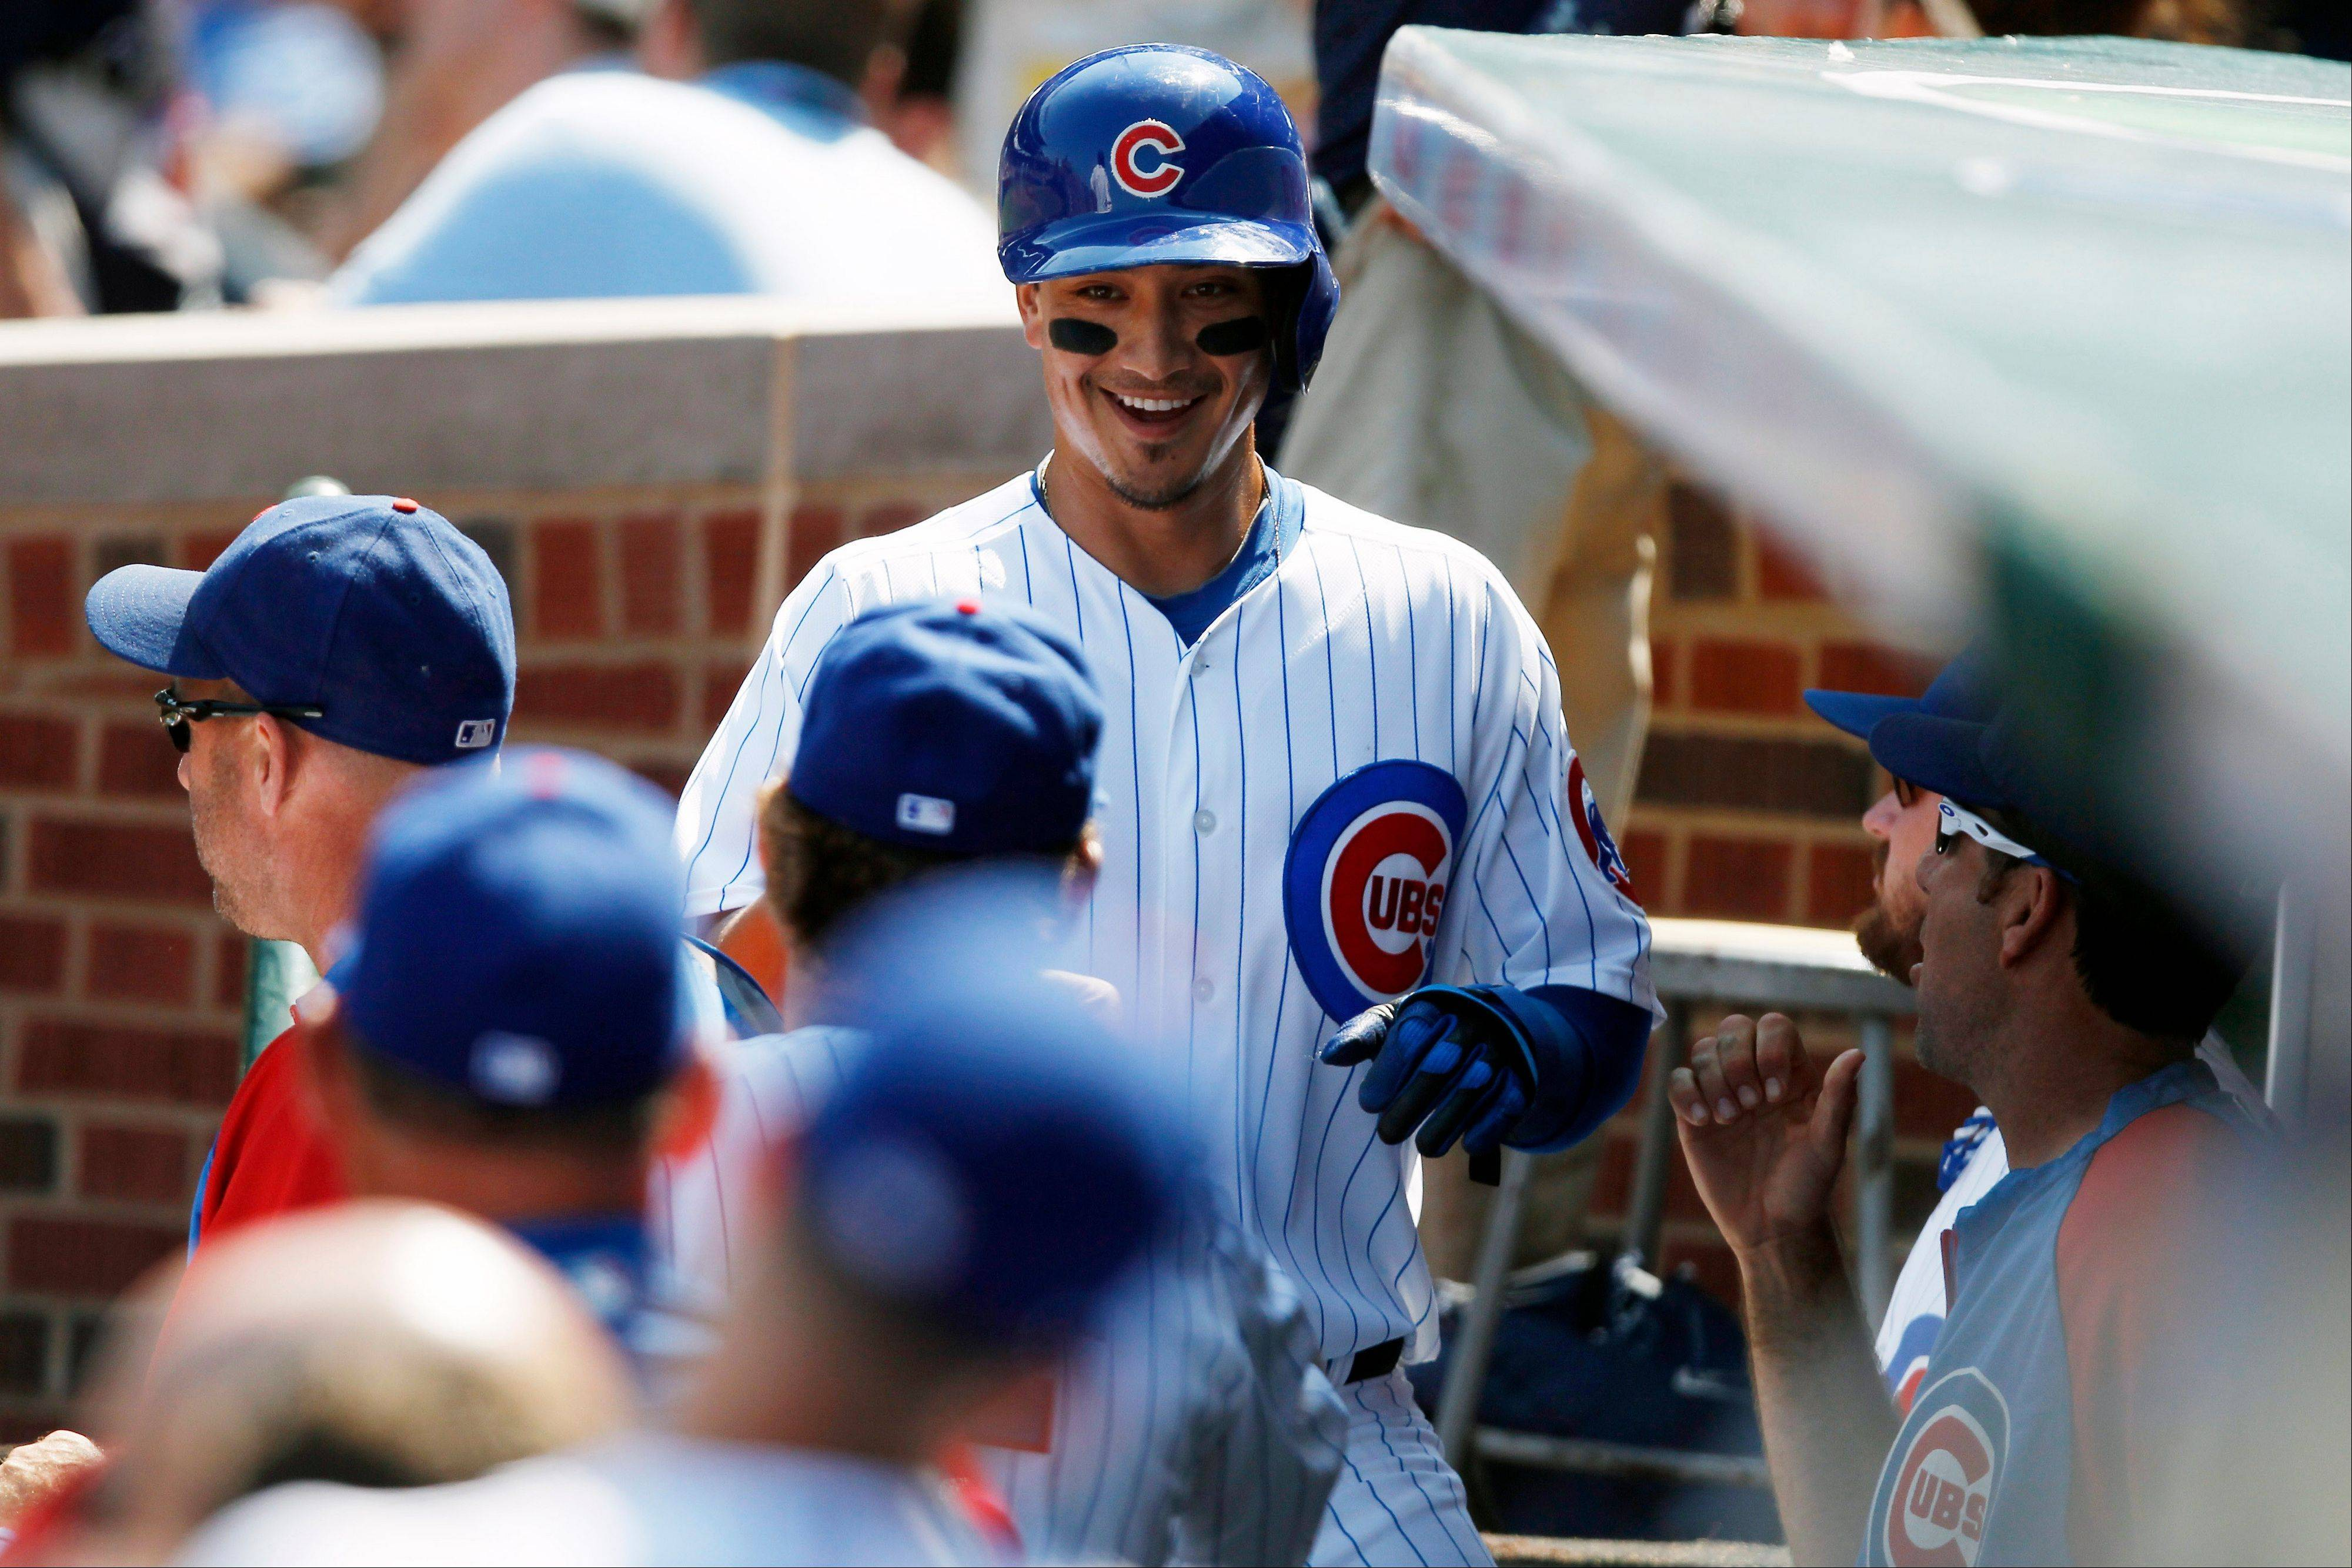 The Cubs� Darwin Barney heads to the dugout after scoring against the Phillies in the first inning Sunday.